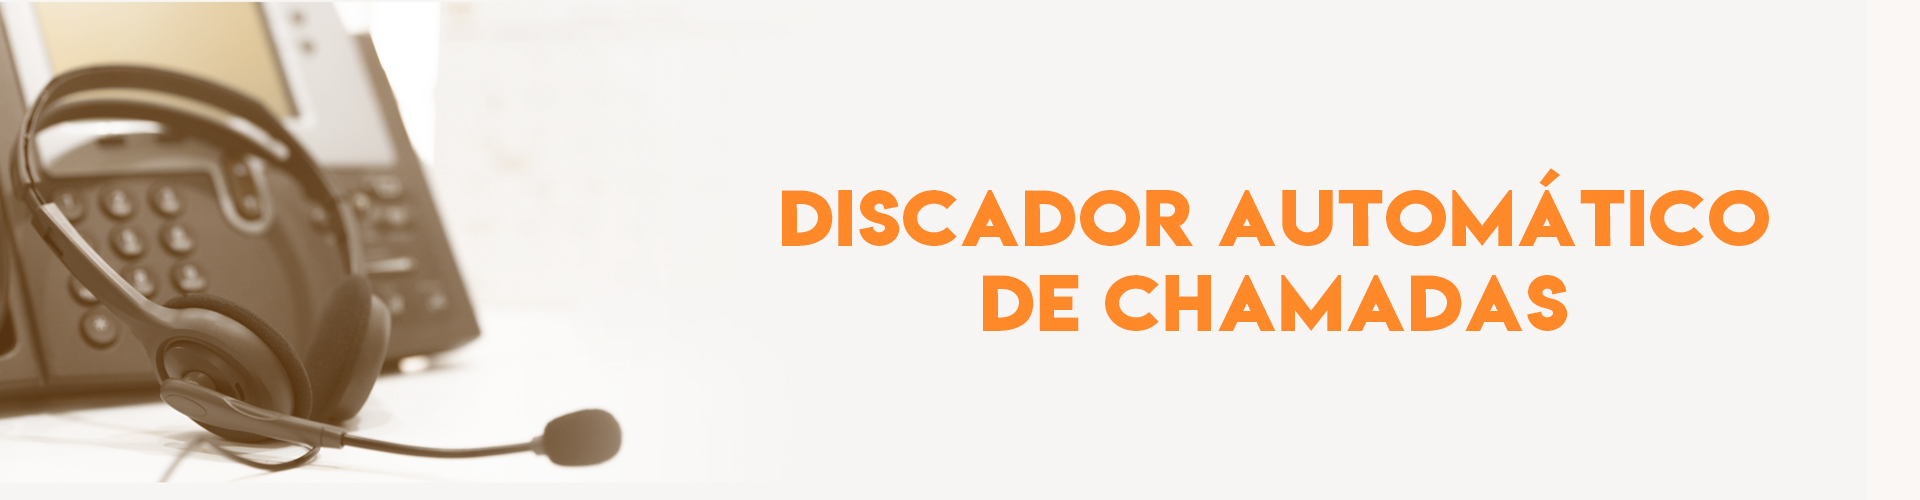 Call Center - Discador Automático de Chamadas